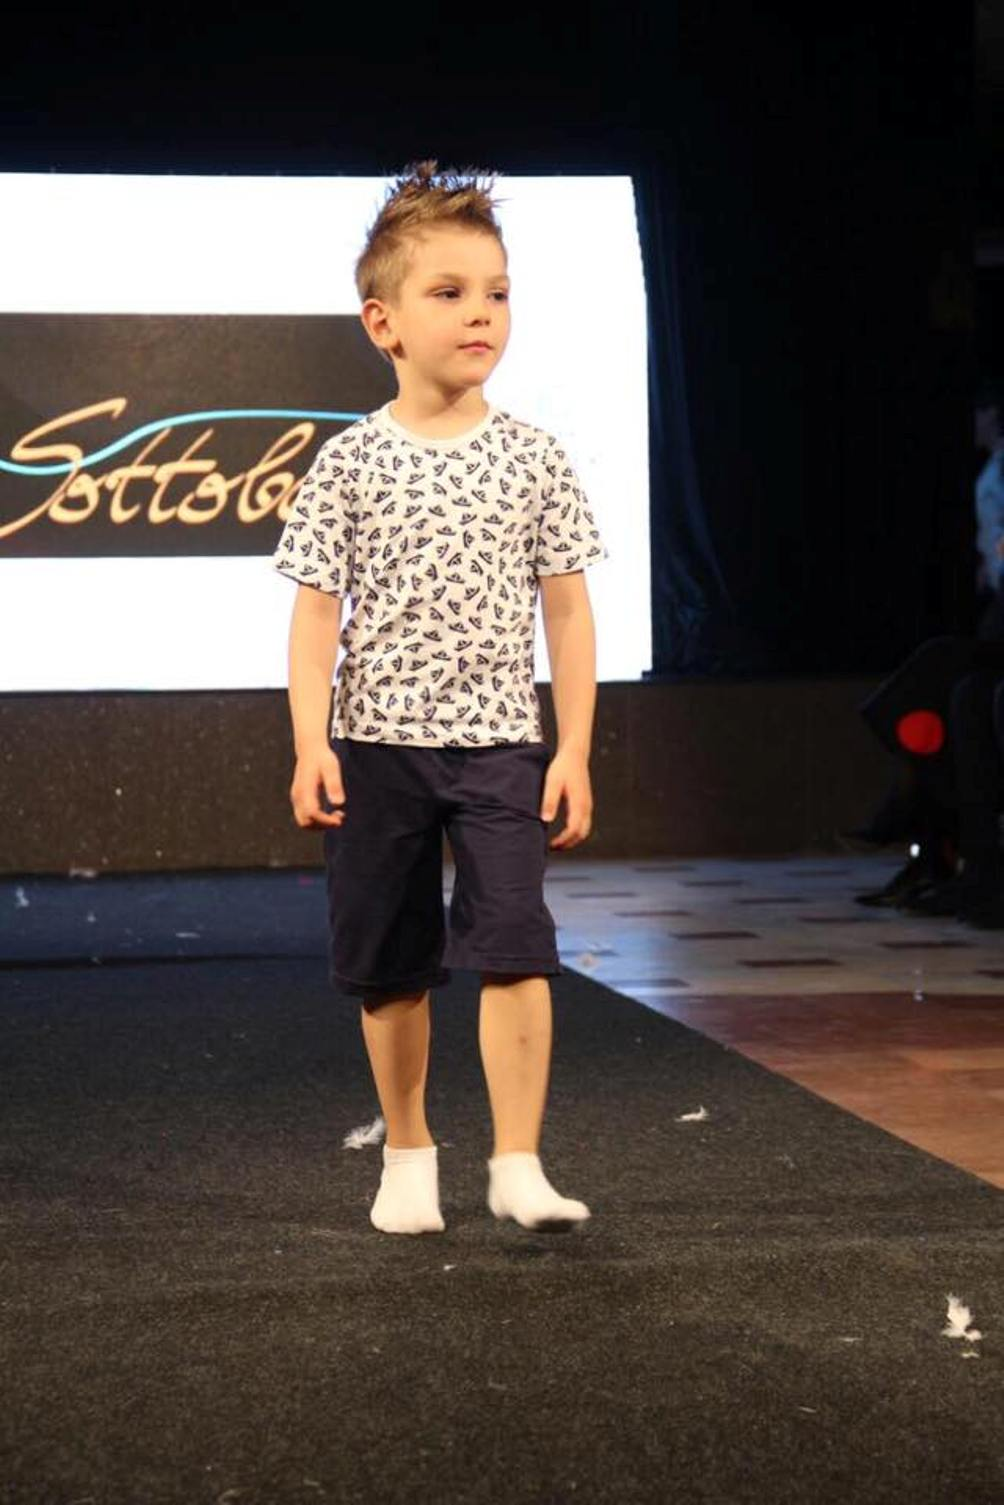 Brend Sottobelo na Pionir kids fashion week-u!